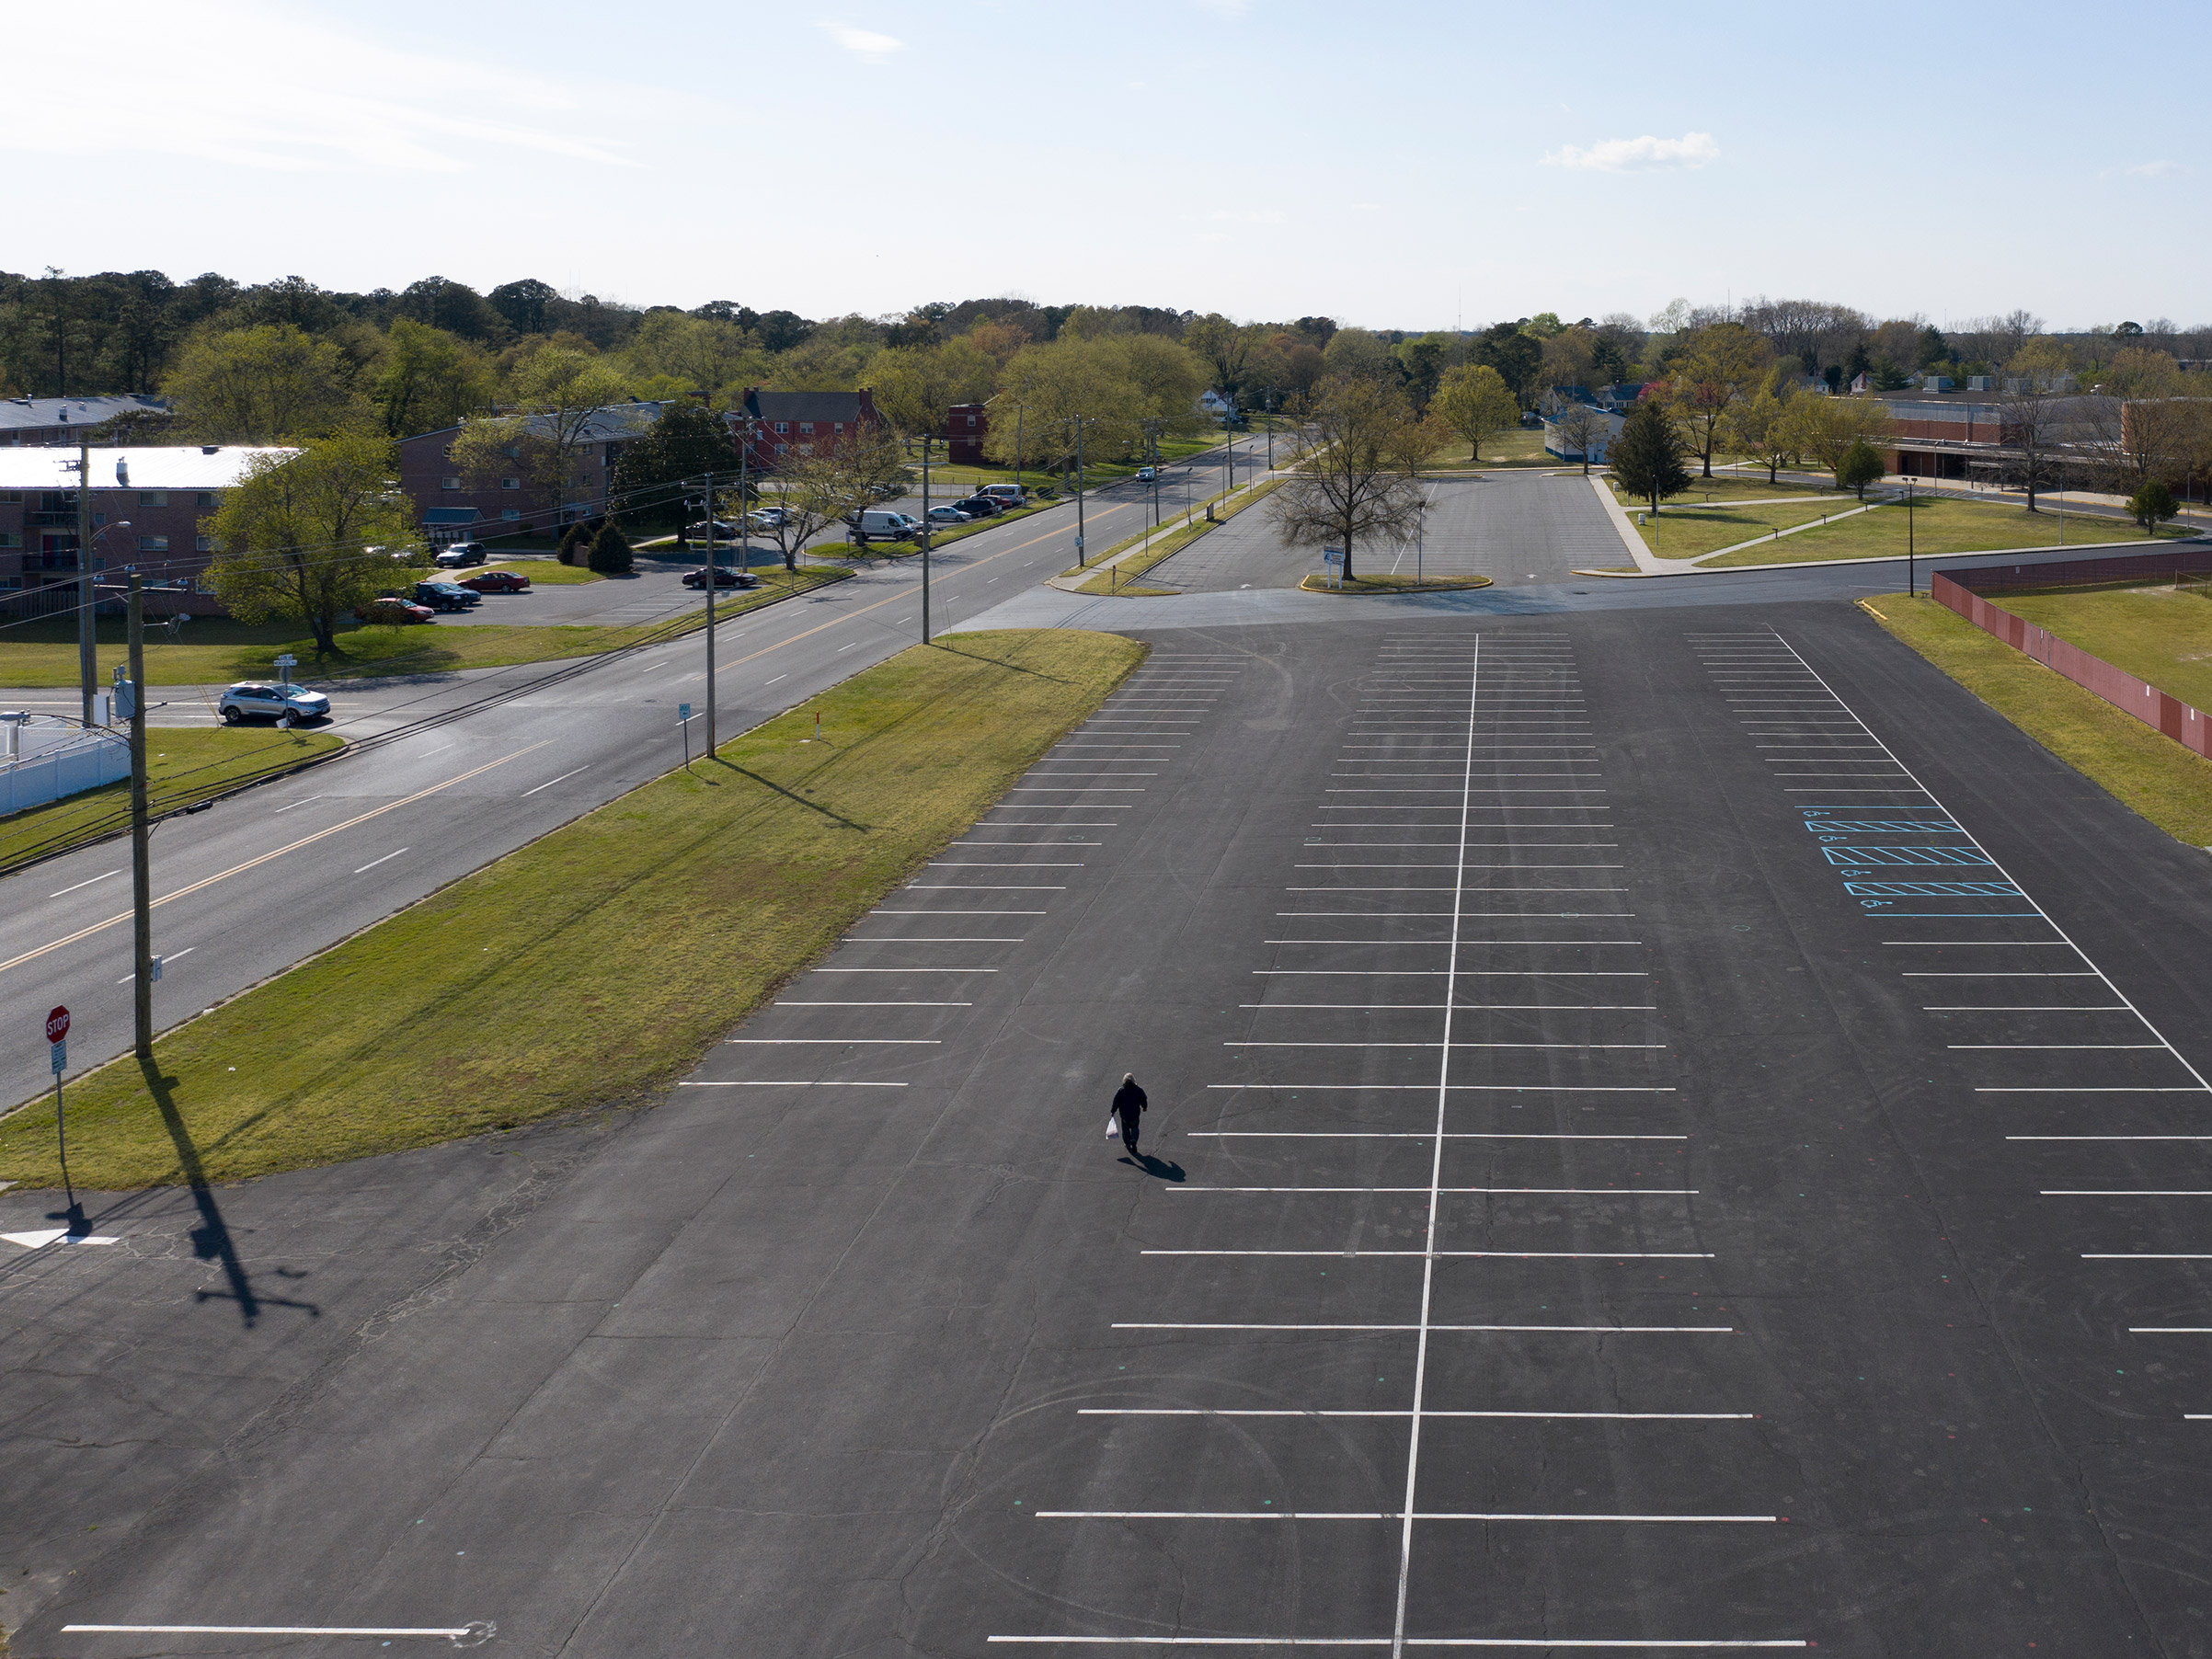 Pandemic lockdowns have                       brought life to a halt in                       towns like Salisbury, Md.,                       pictured here on April 11,                       emptying normally                       teeming public spaces                       like the parking lot of the                       Wicomico High School and                       stadium, right.